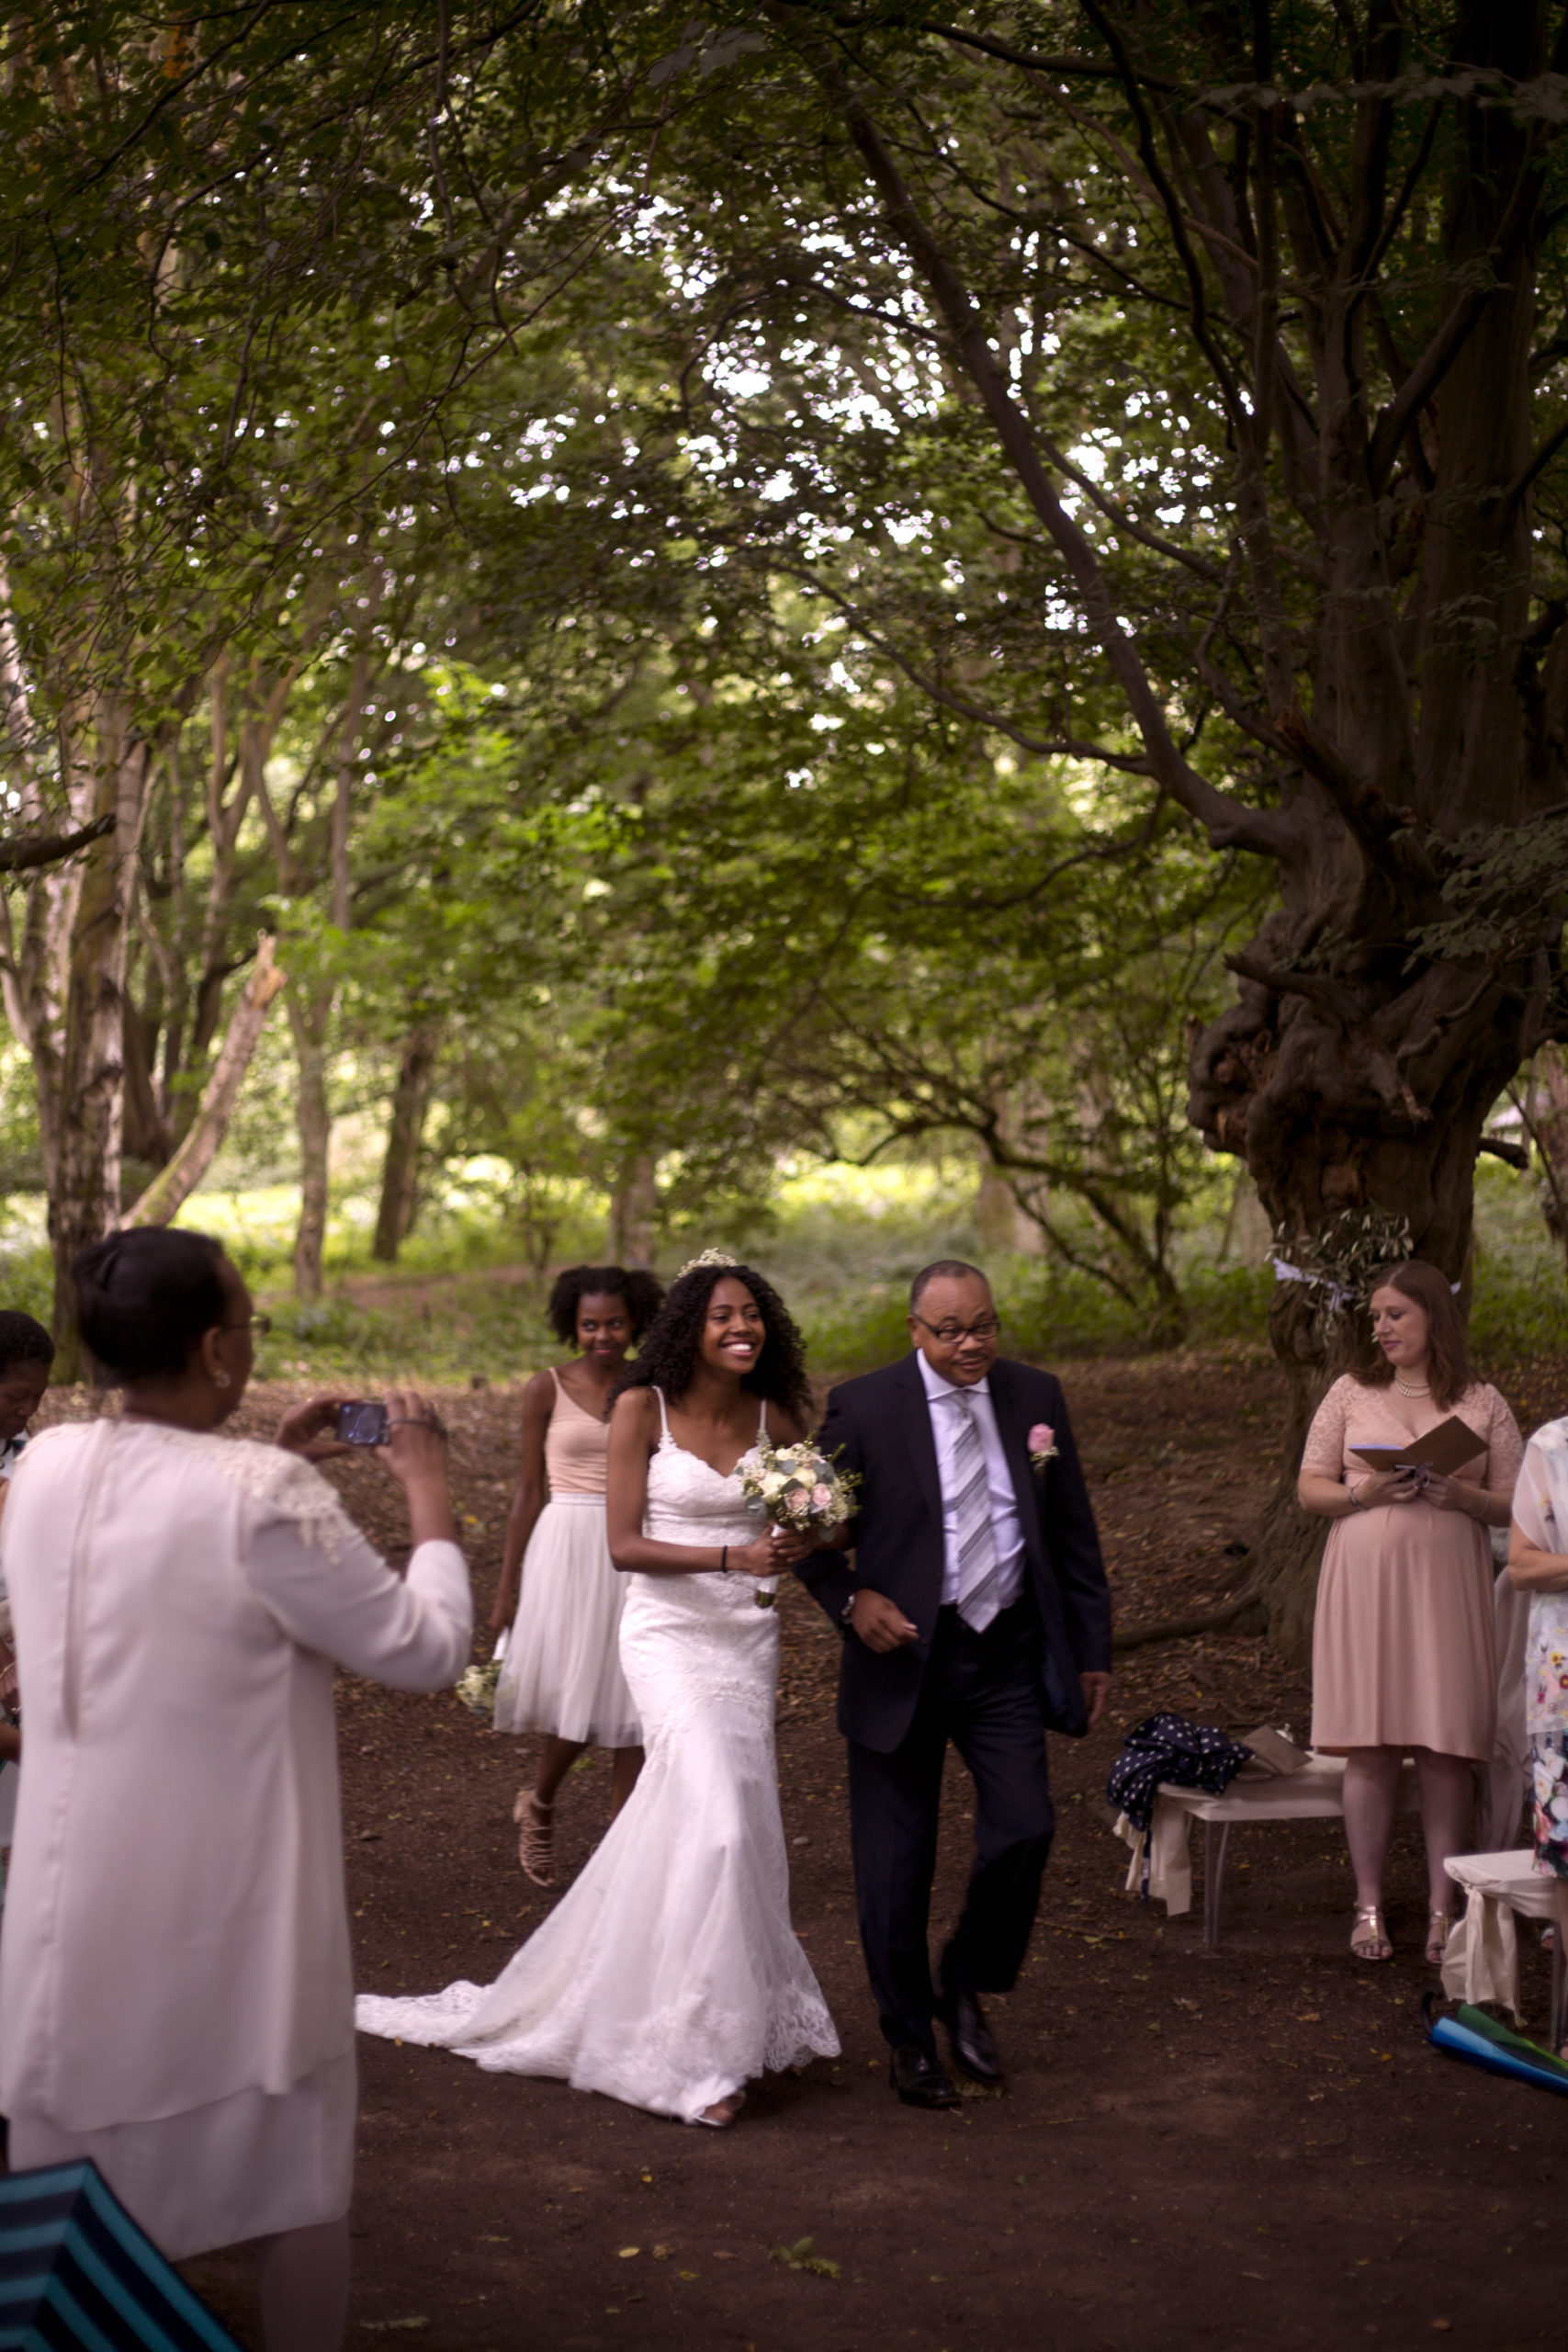 Father of the bride walks the bride down the aisle outdoor ceremony woodland wedding photographer